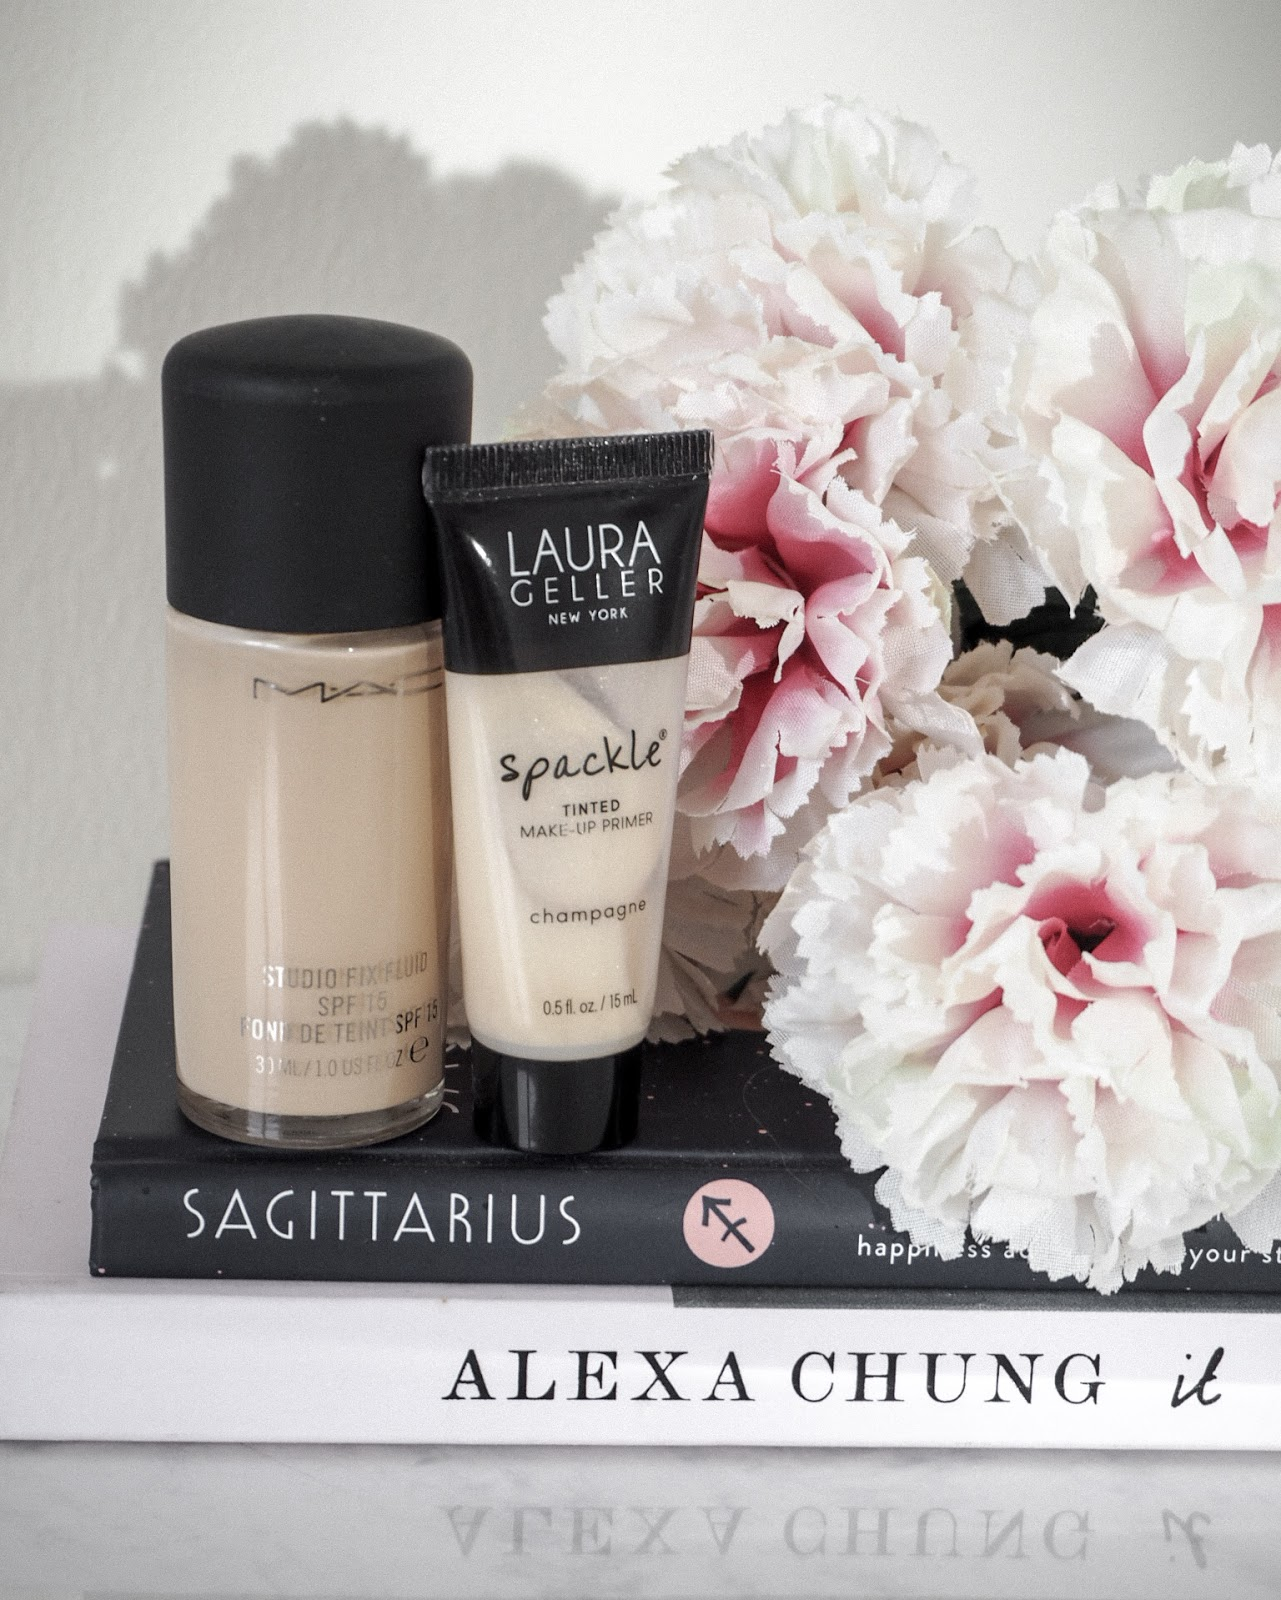 Mac Studio Fix Fluid and Laura Geller Spackle Primer